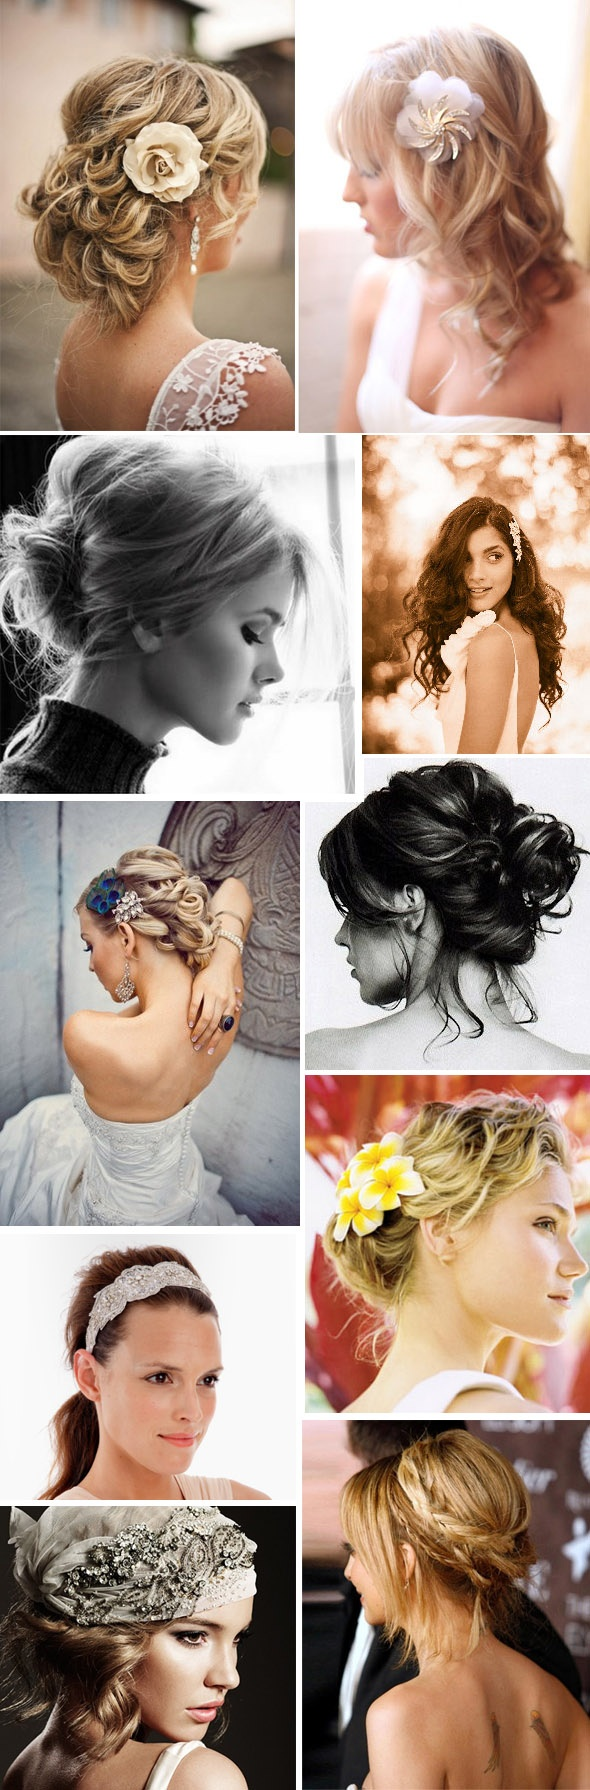 Google Image Result for http://bridalbar.squarespace.com/storage/wedding%2520hair%2520ideas.jpg%3F__SQUARESPACE_CACHEVERSION%3D1315515172857